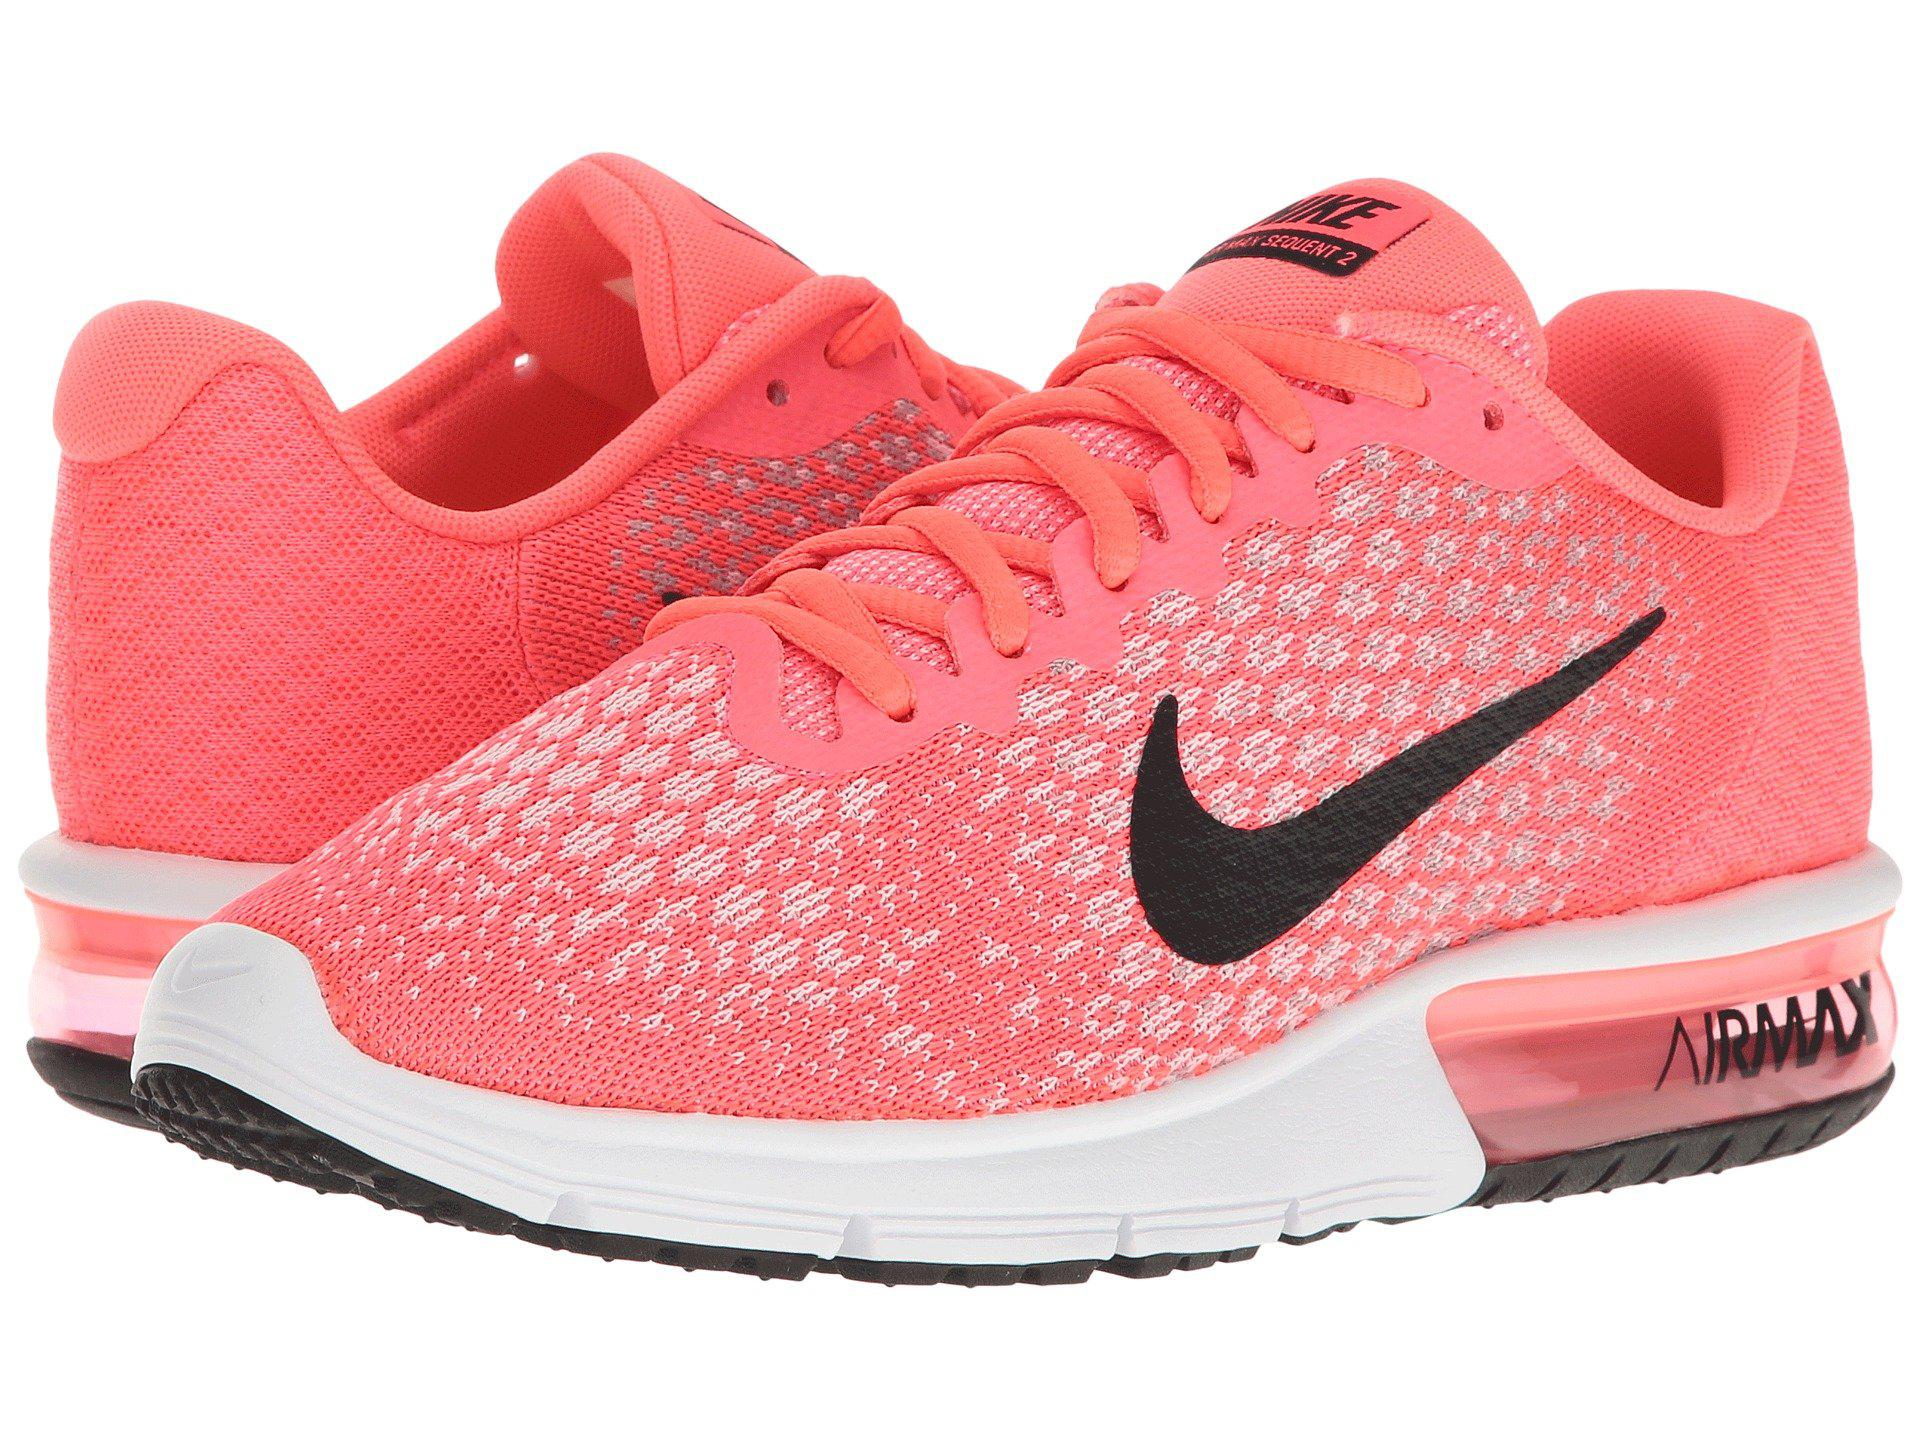 Nike Synthetic Air Max Sequent 2 in